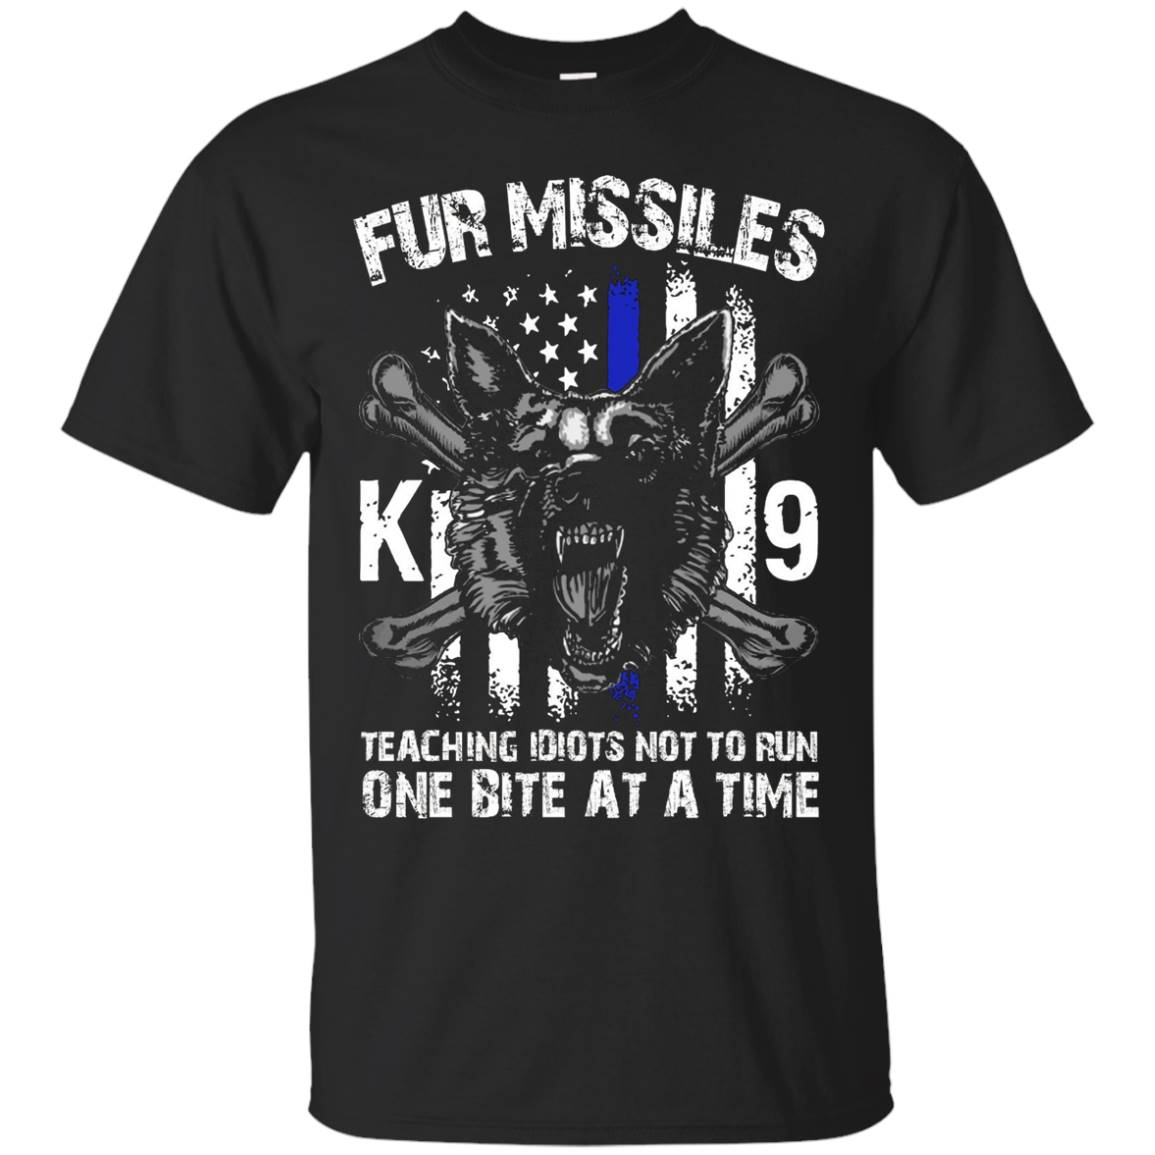 FUR MISSILE K9 T SHIRT – Gifts for Dog Lovers T-Shirt